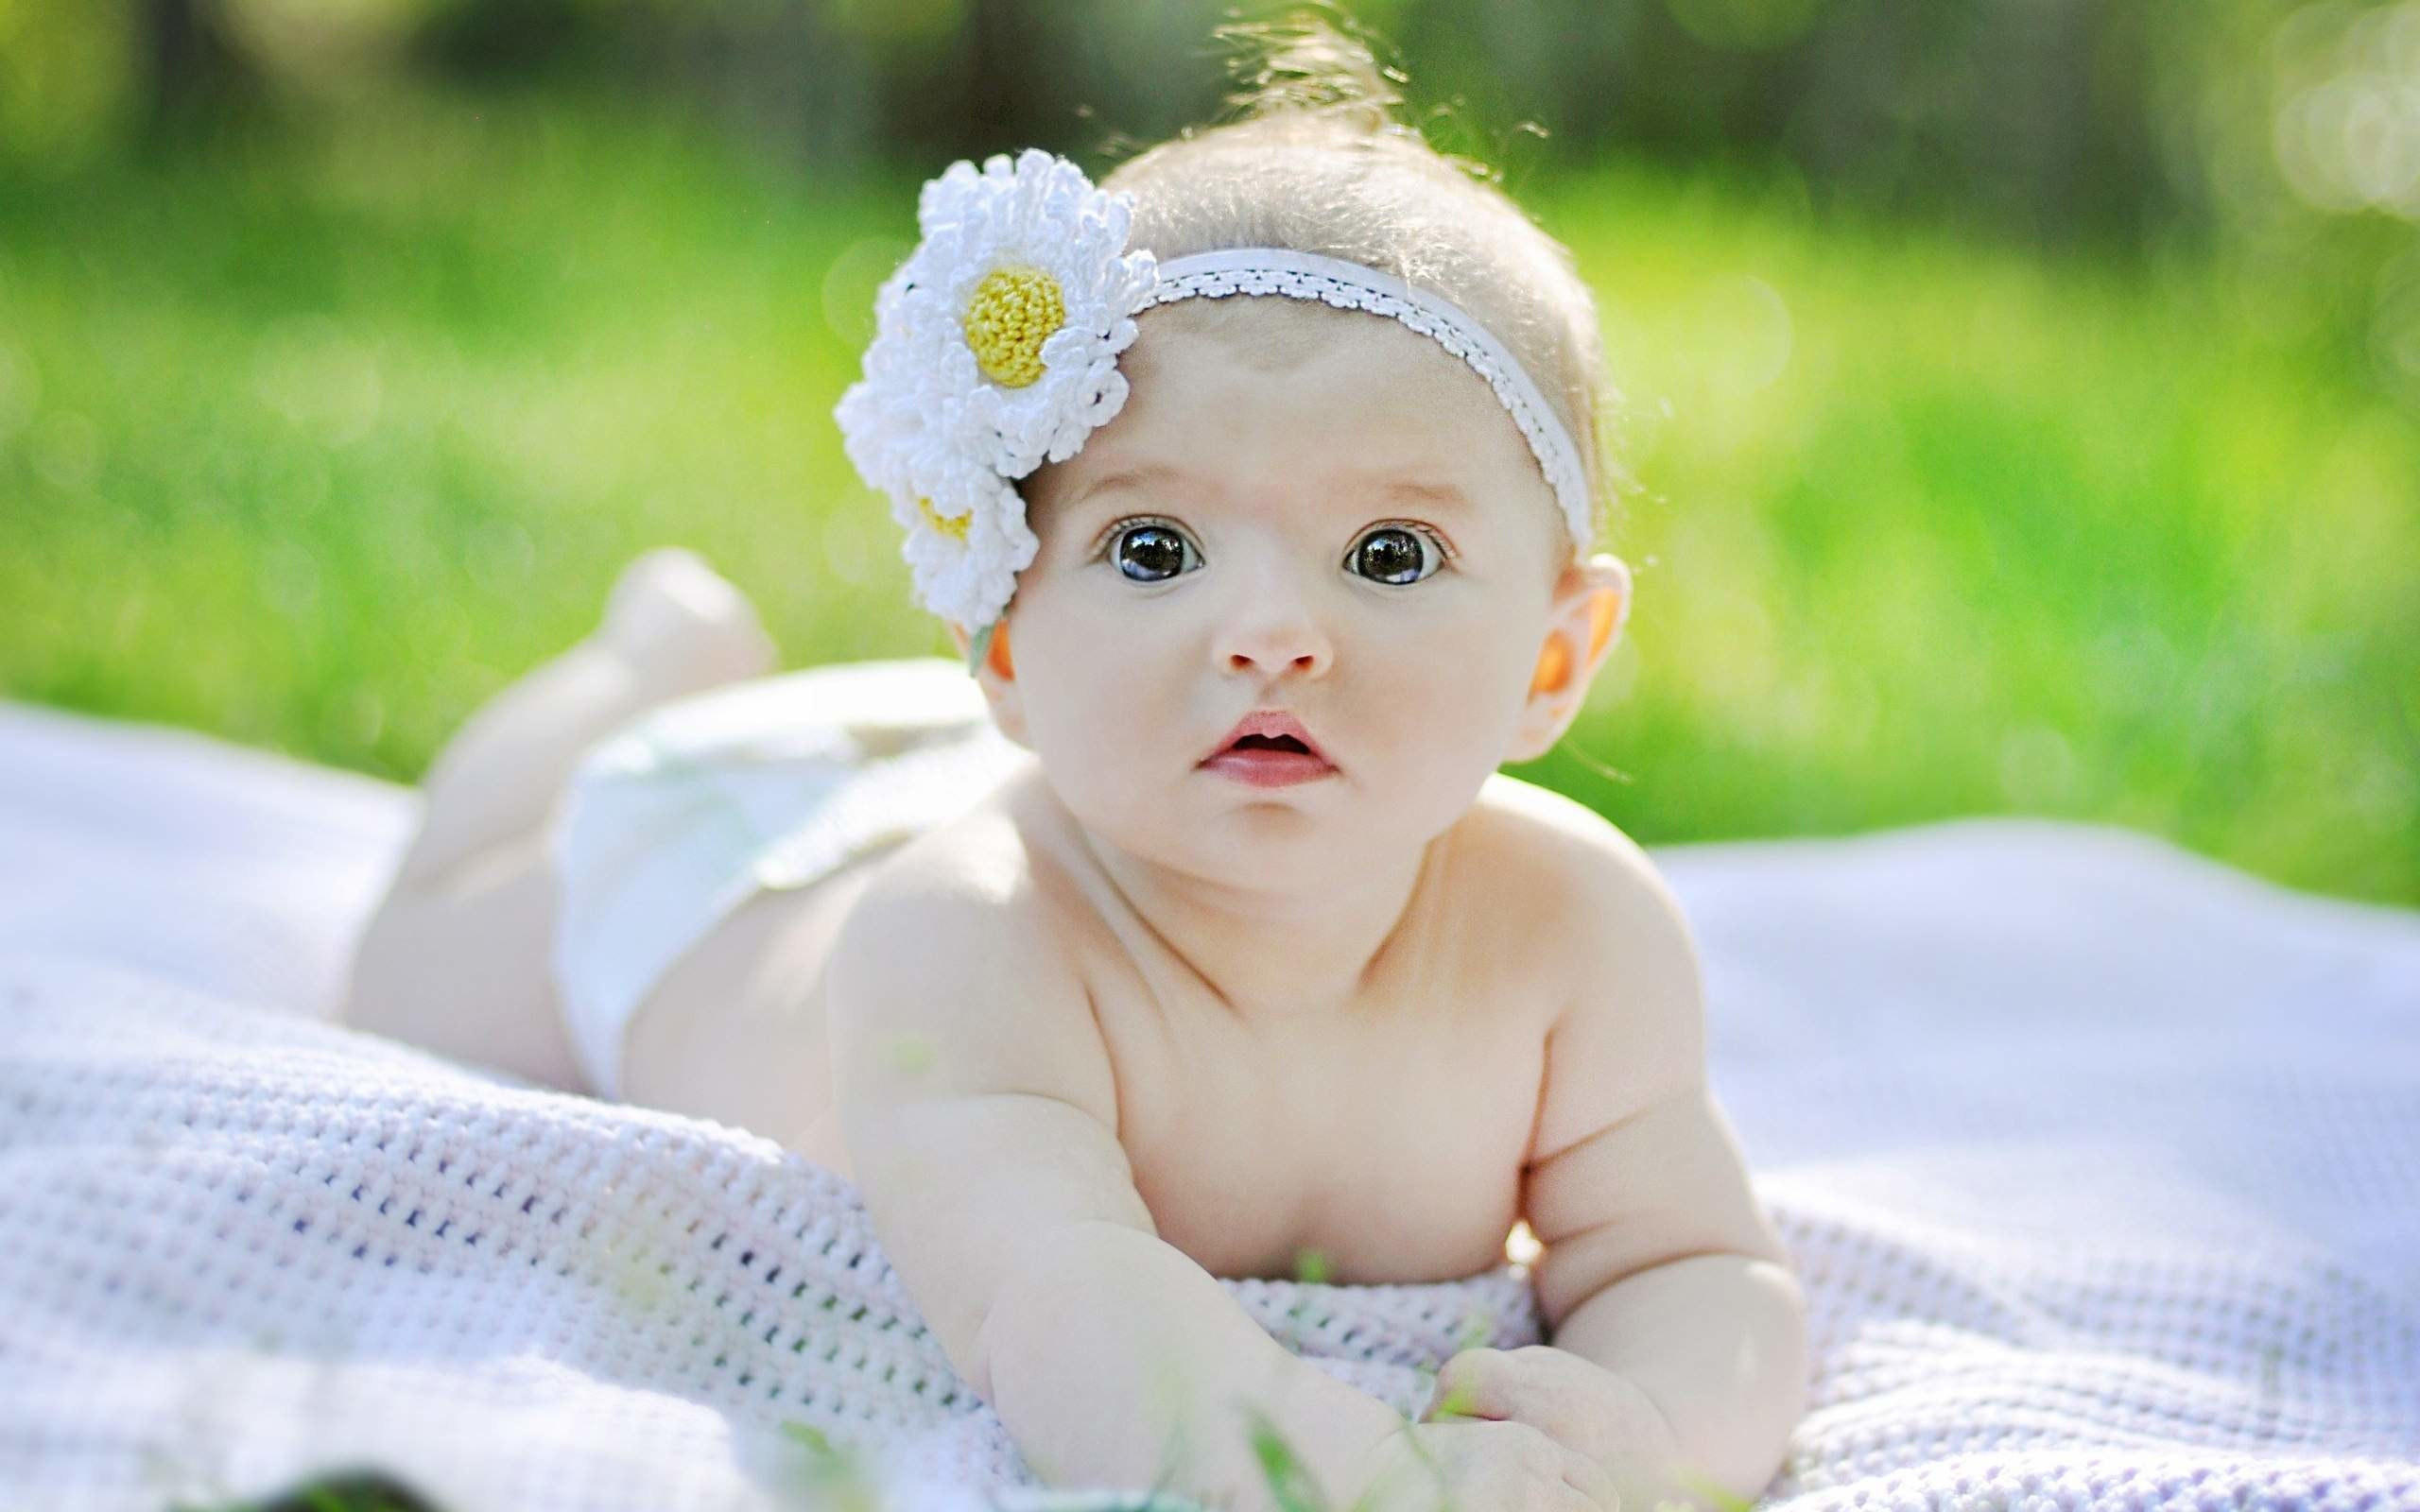 Sweet Little Girl Hd Wallpaper Wallpaper Babies 183 ①